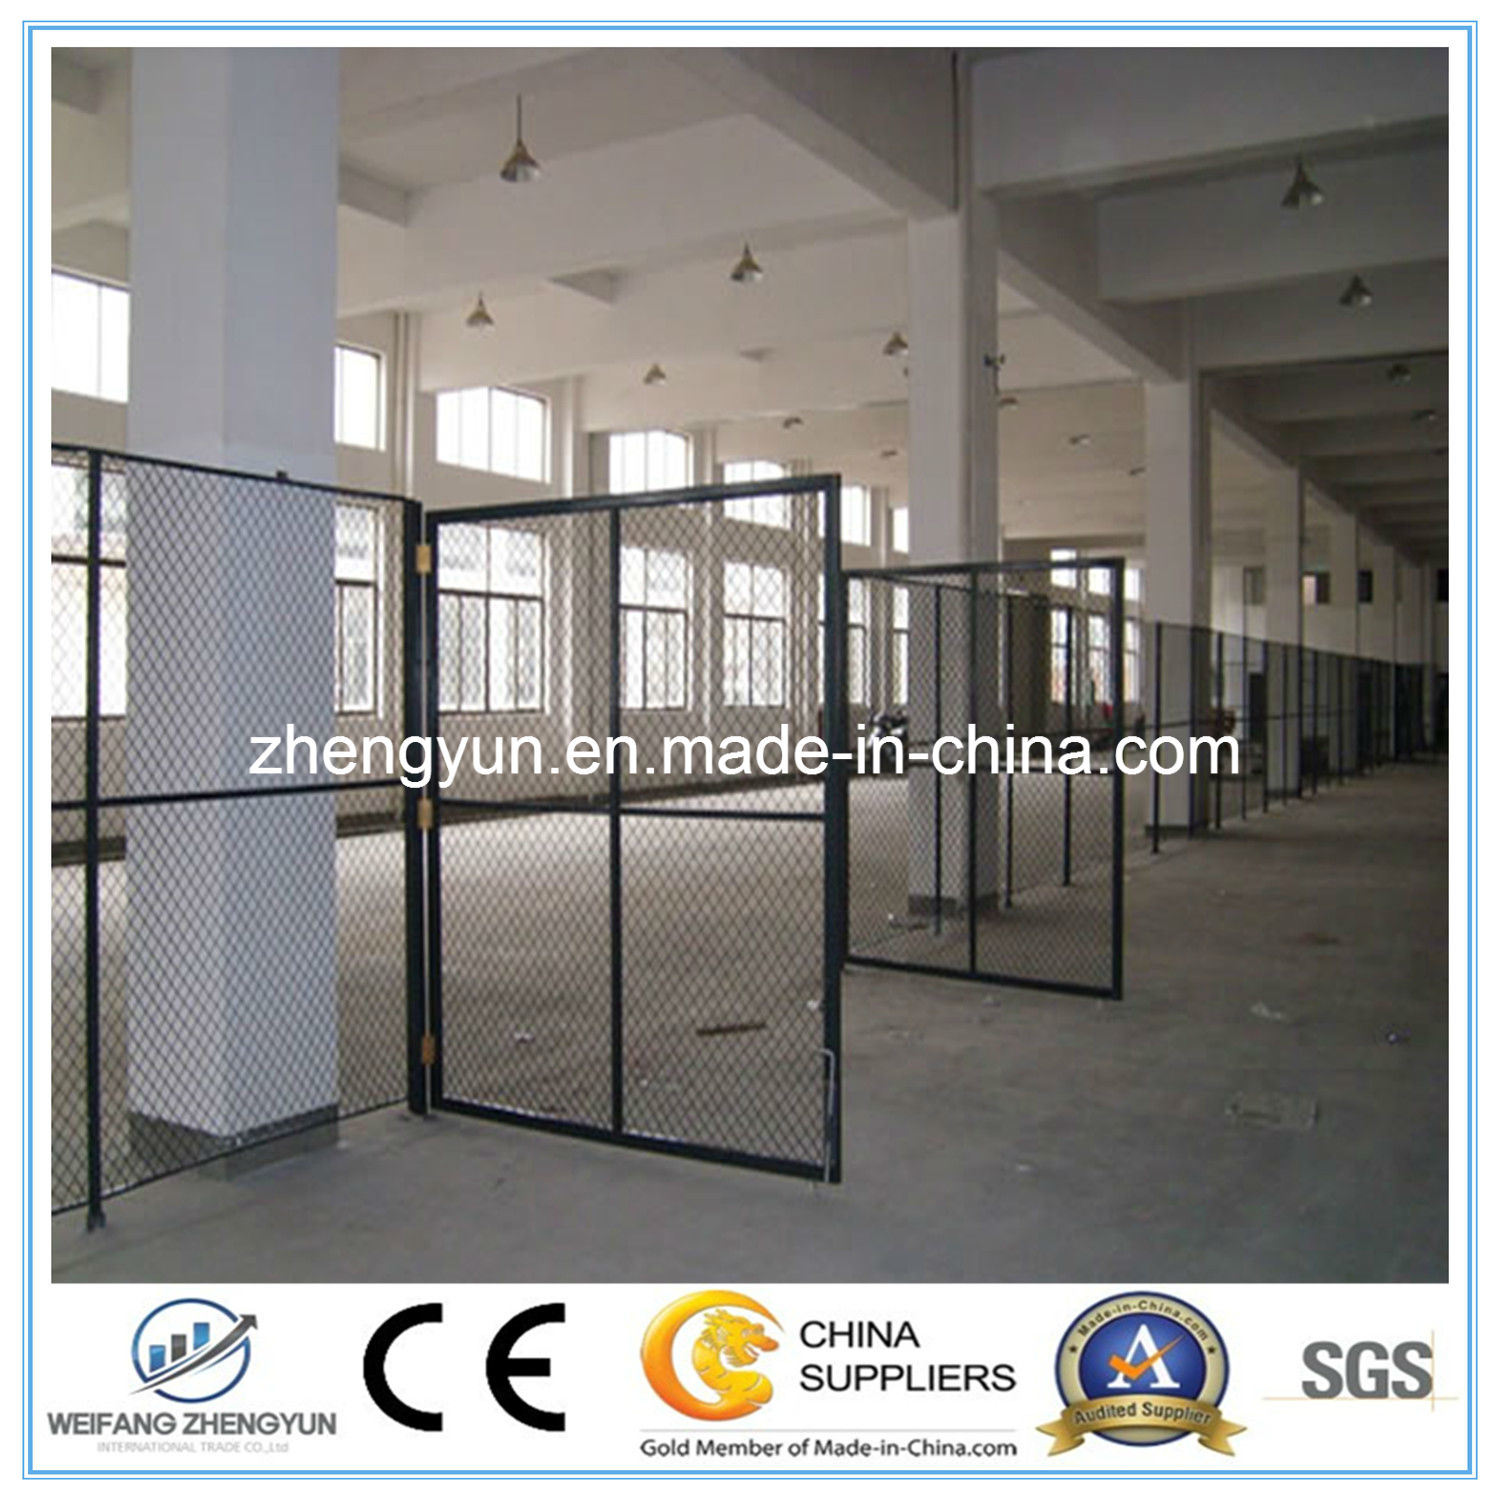 China Manufacturer High Quality Galvanized Fence Door